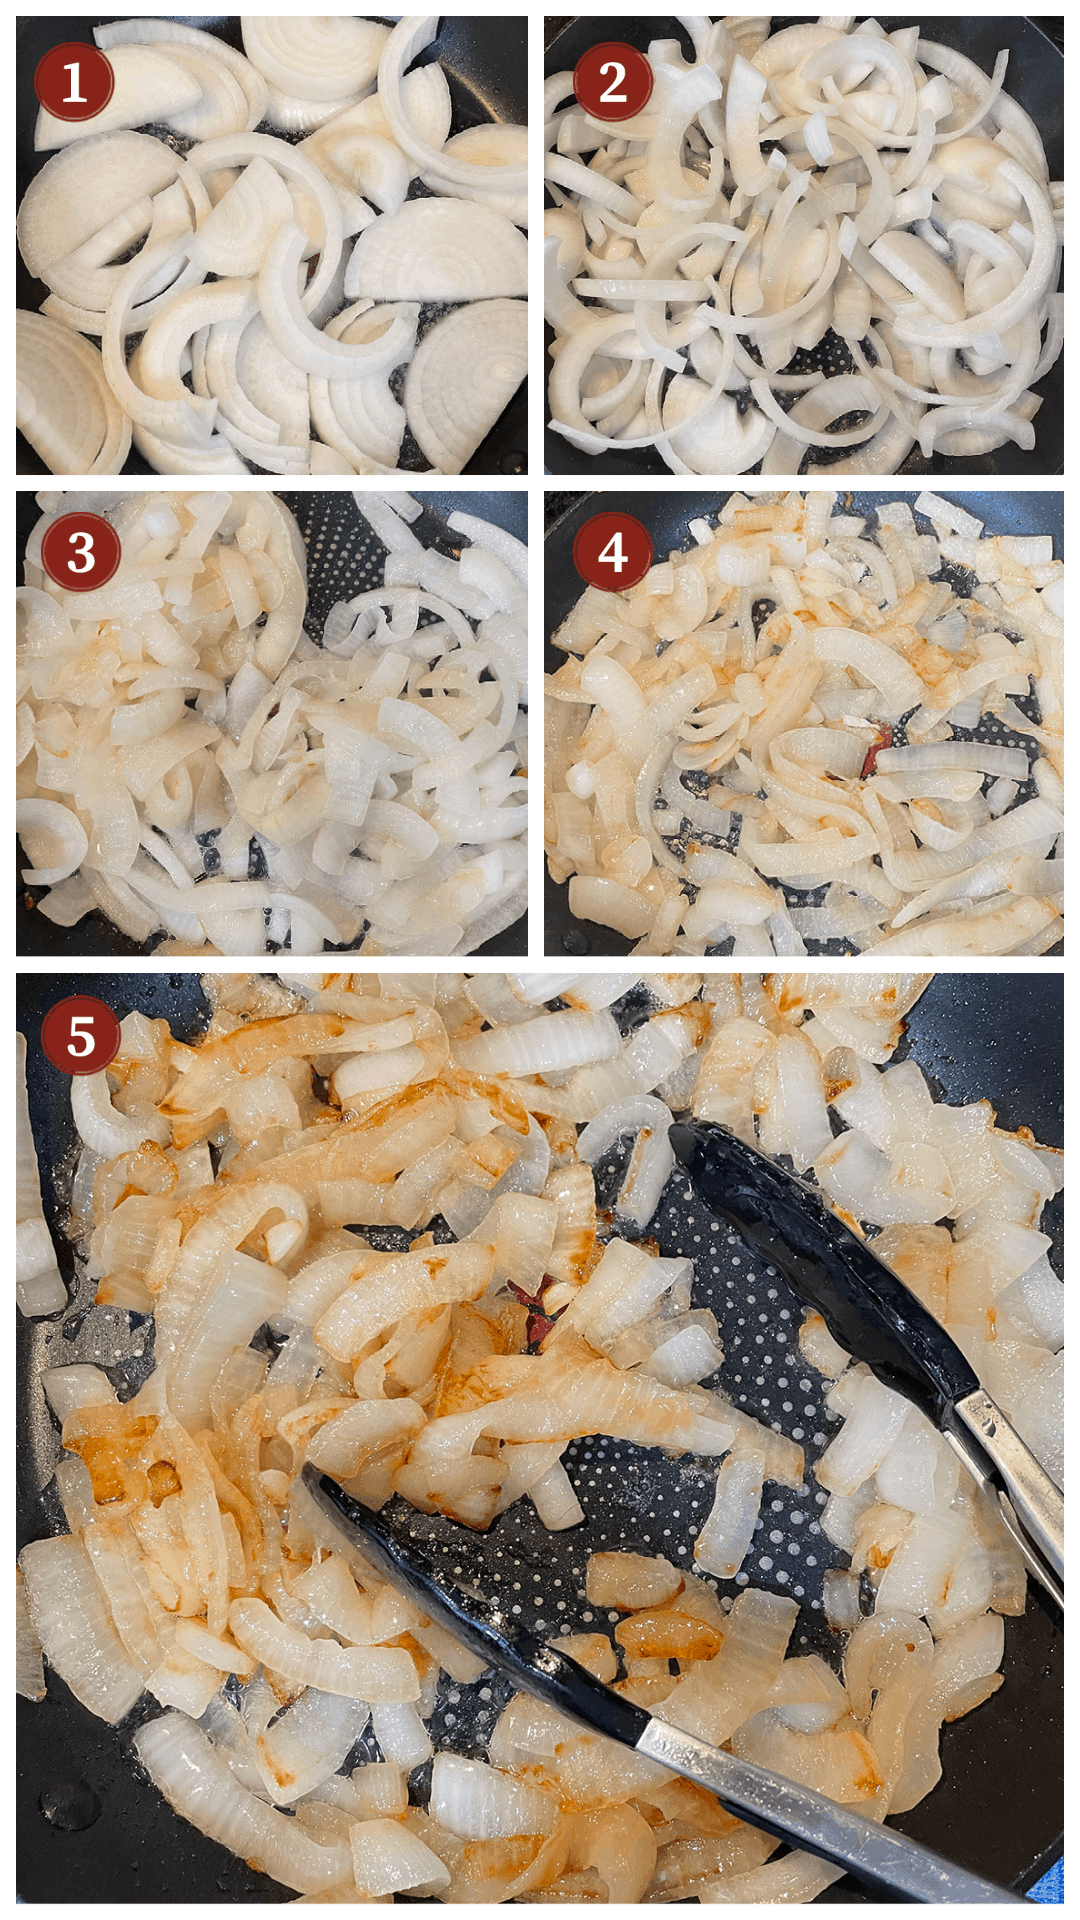 A collage of images showing how to fry onions, steps 1 - 5.